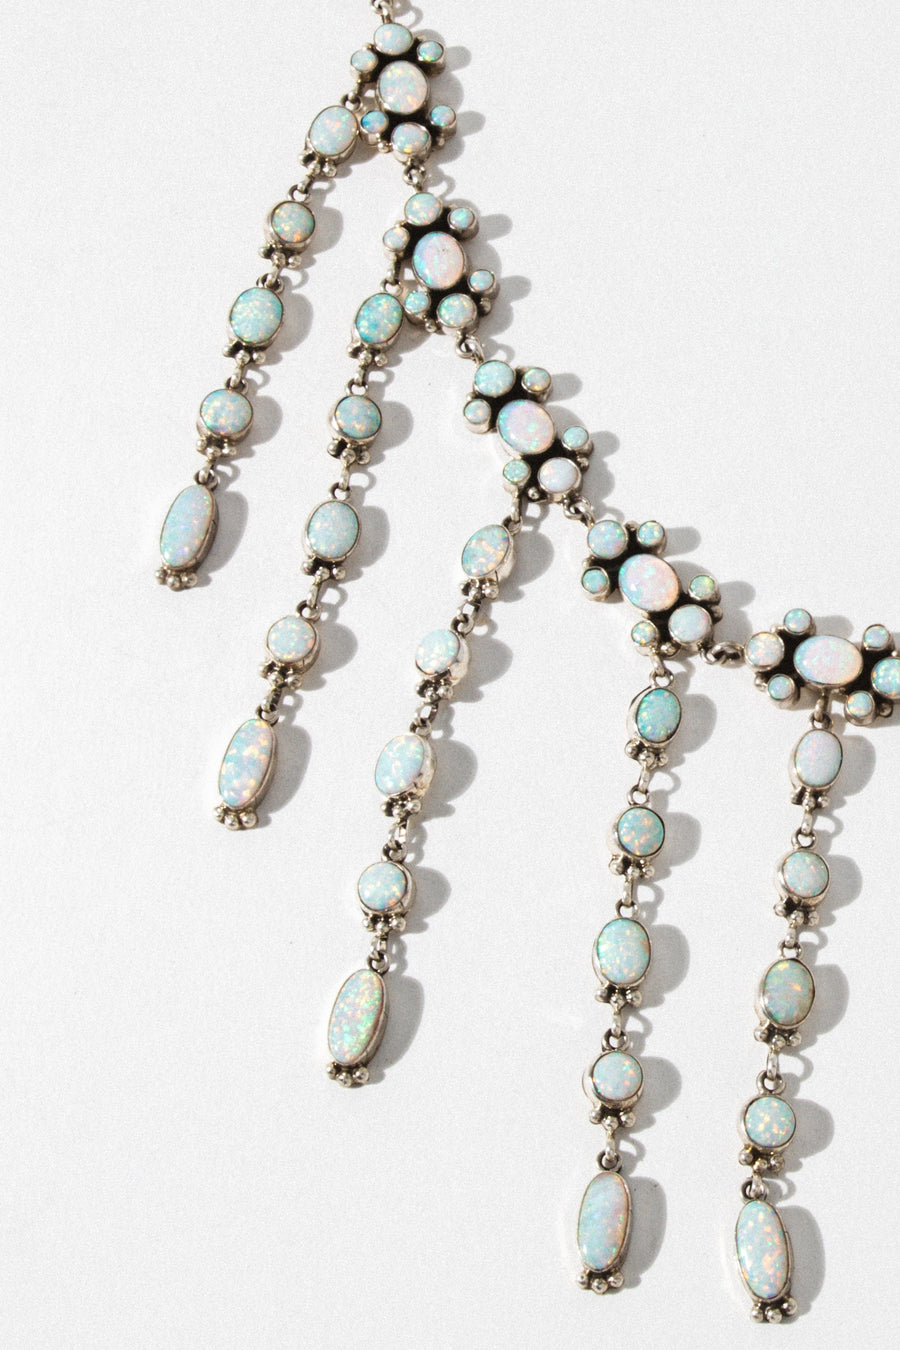 Sunwest Jewelry Silver / 32 Inches Drops of Opal Statement Necklace